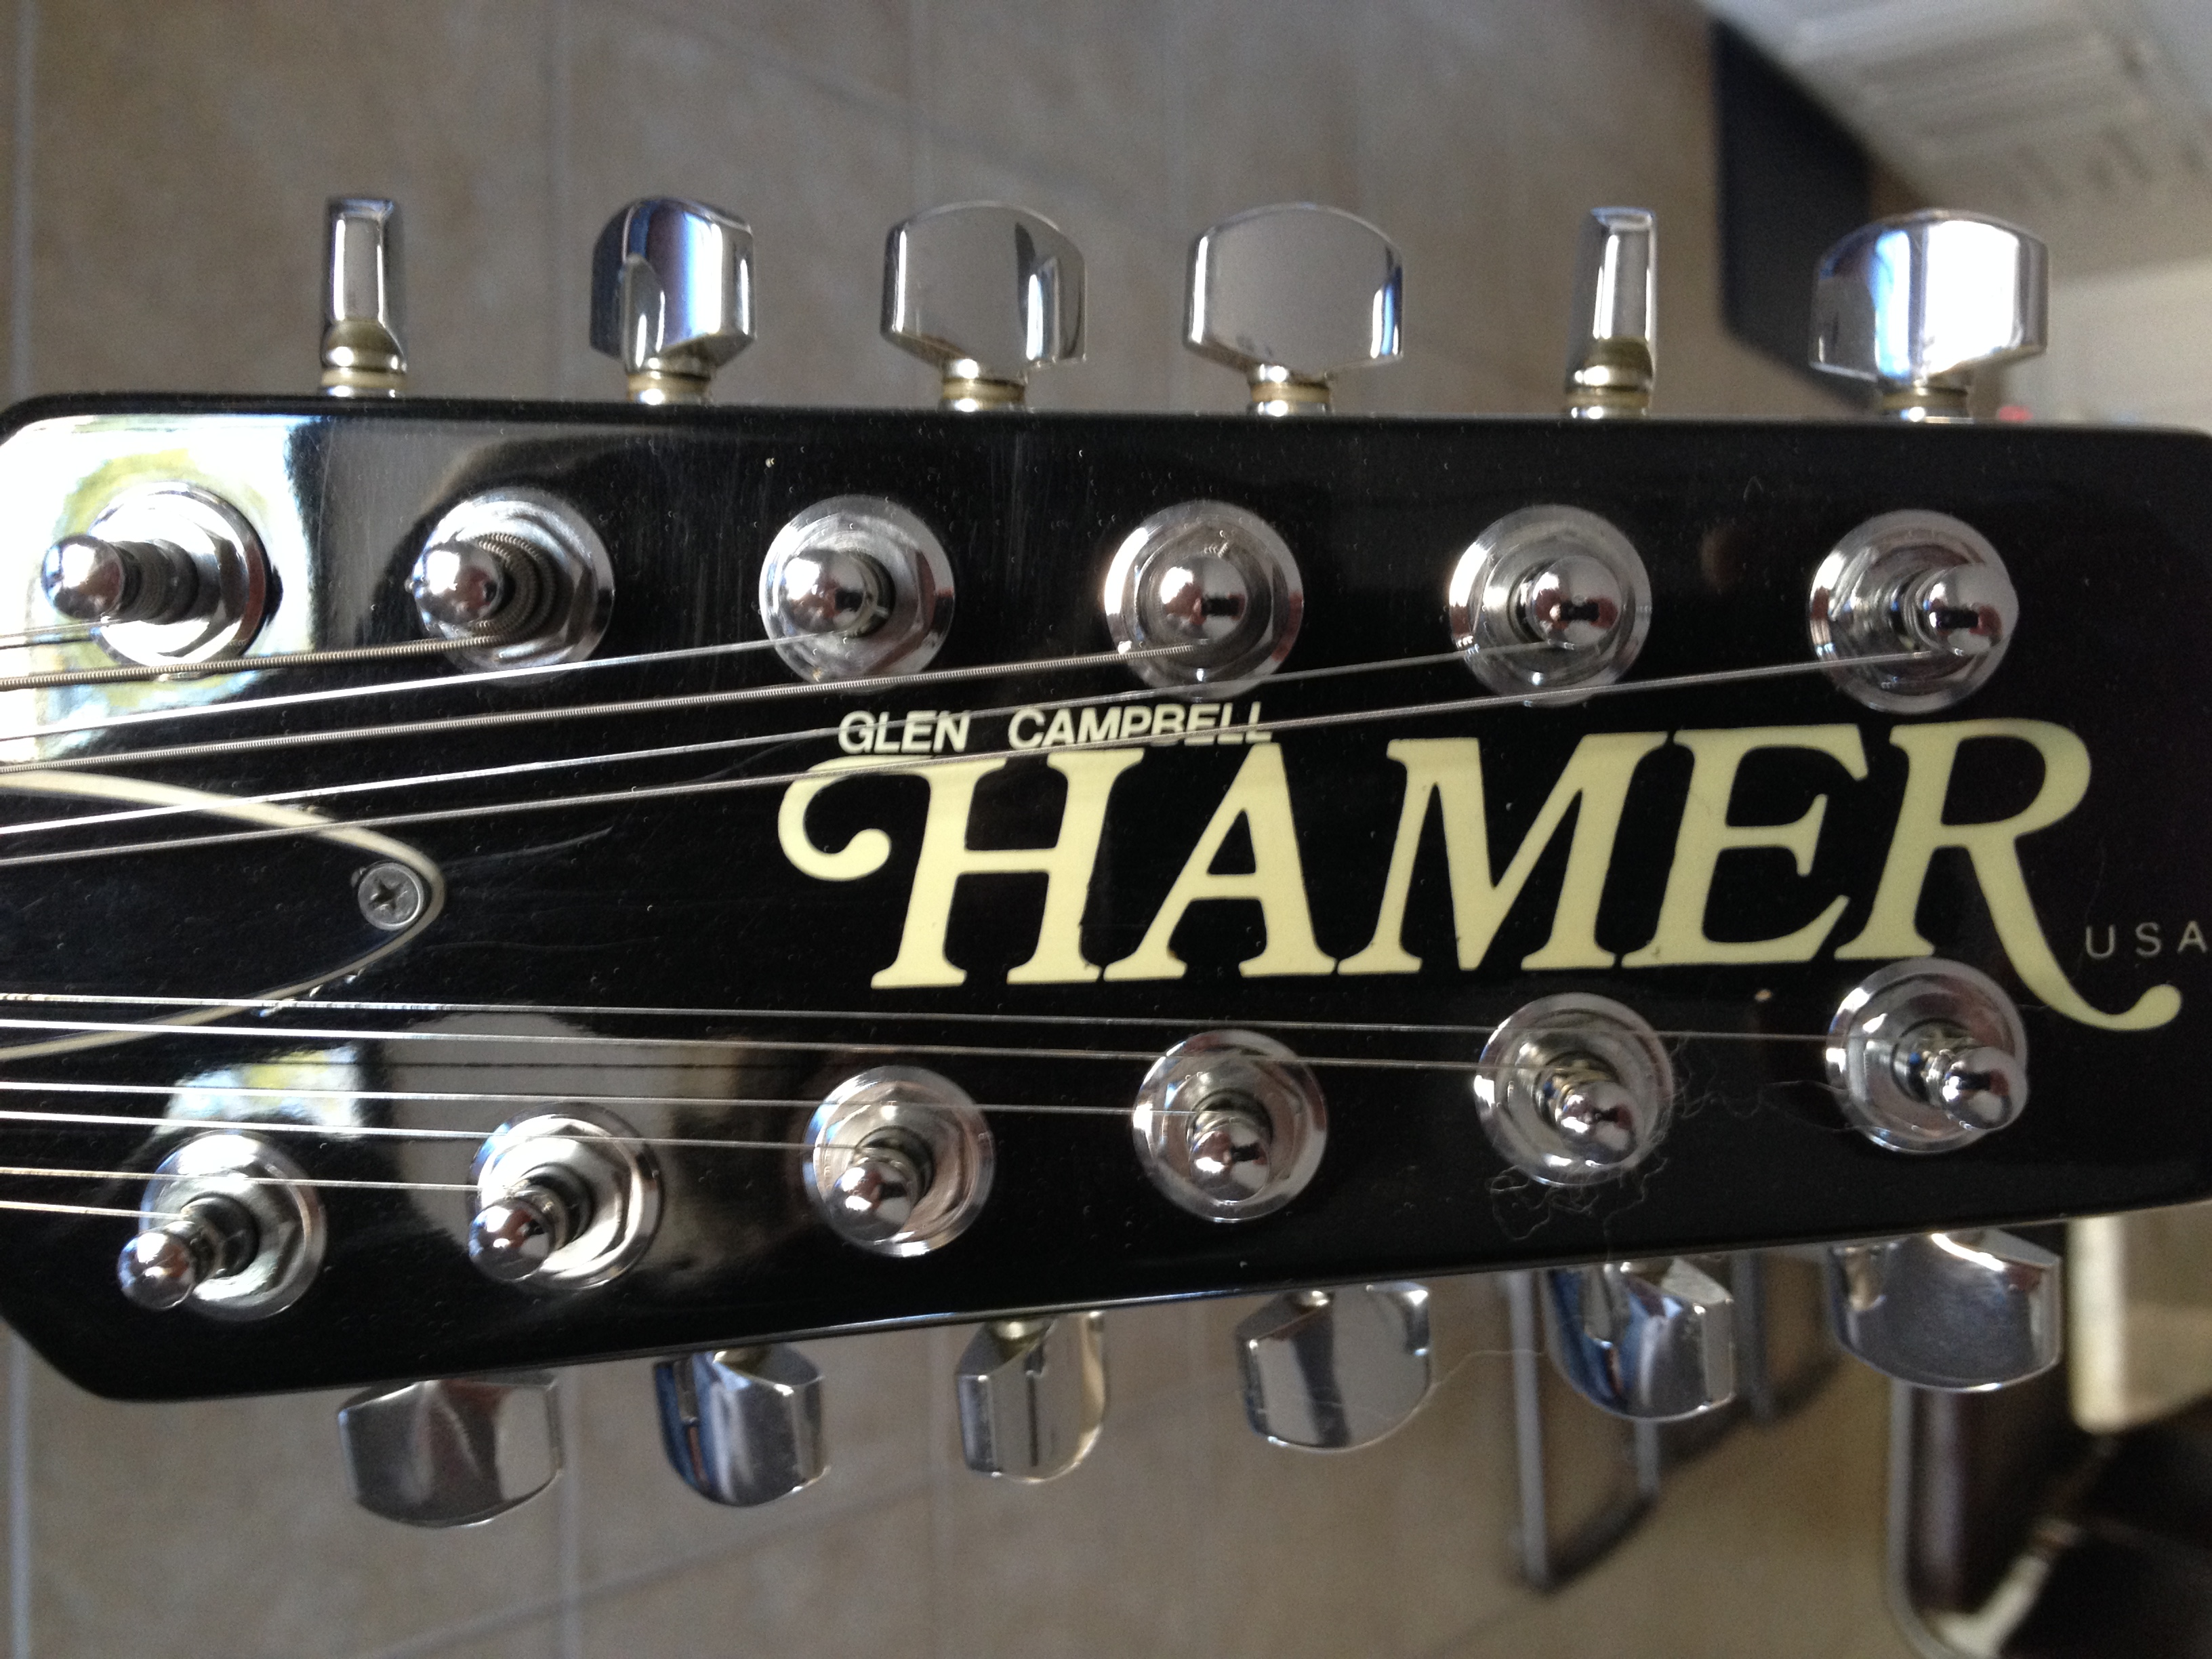 Glen Campbell - Hamer 12 String Headstock.jpg